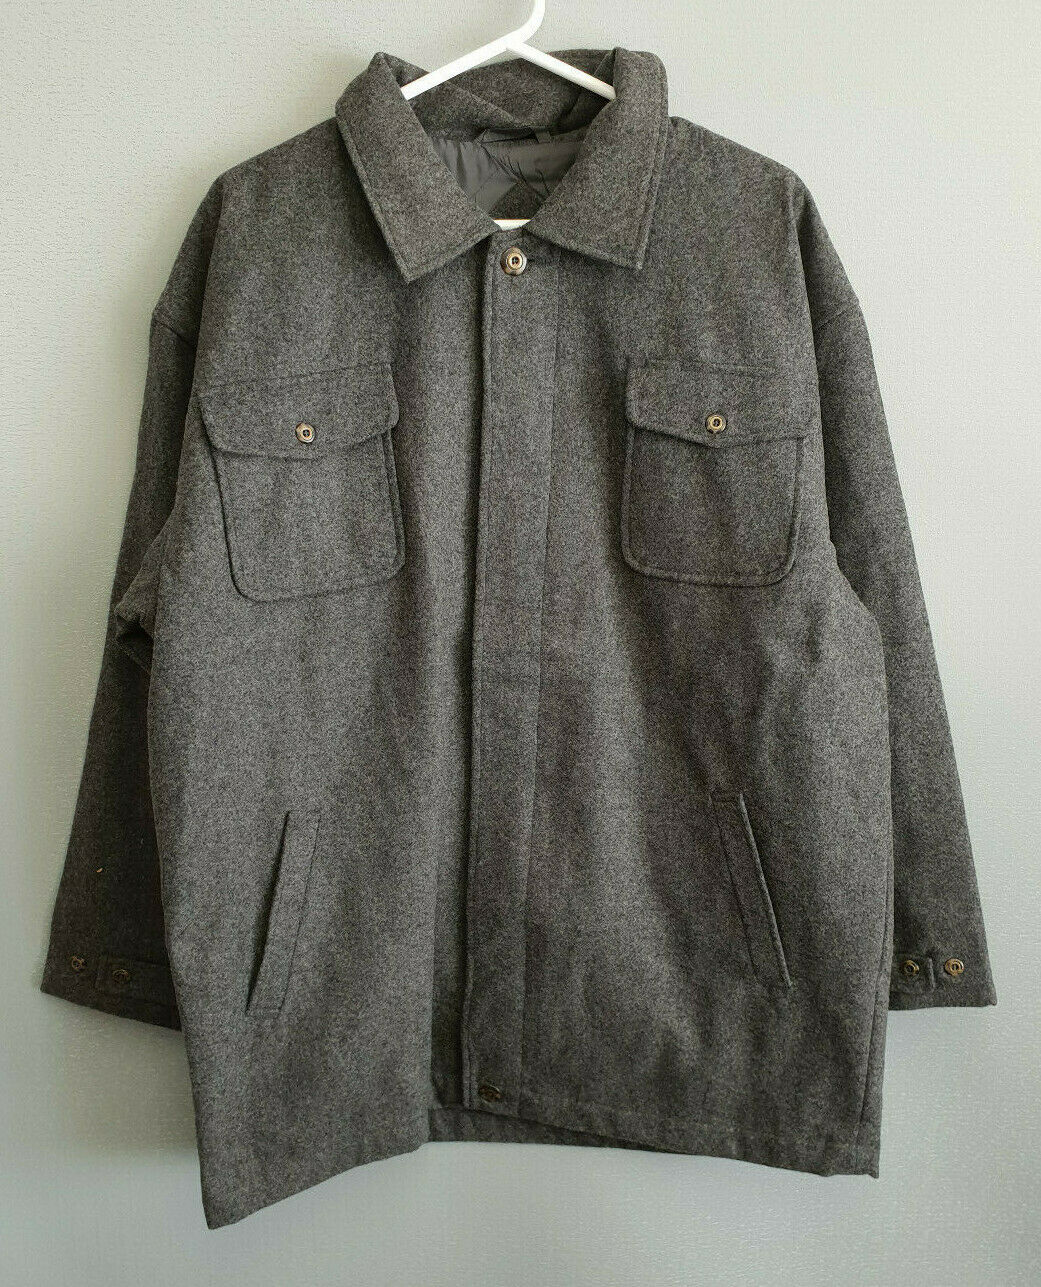 BNWT Mens Sz XXL Grey Trenders Brand Woolen Heavy Weight Button Coat